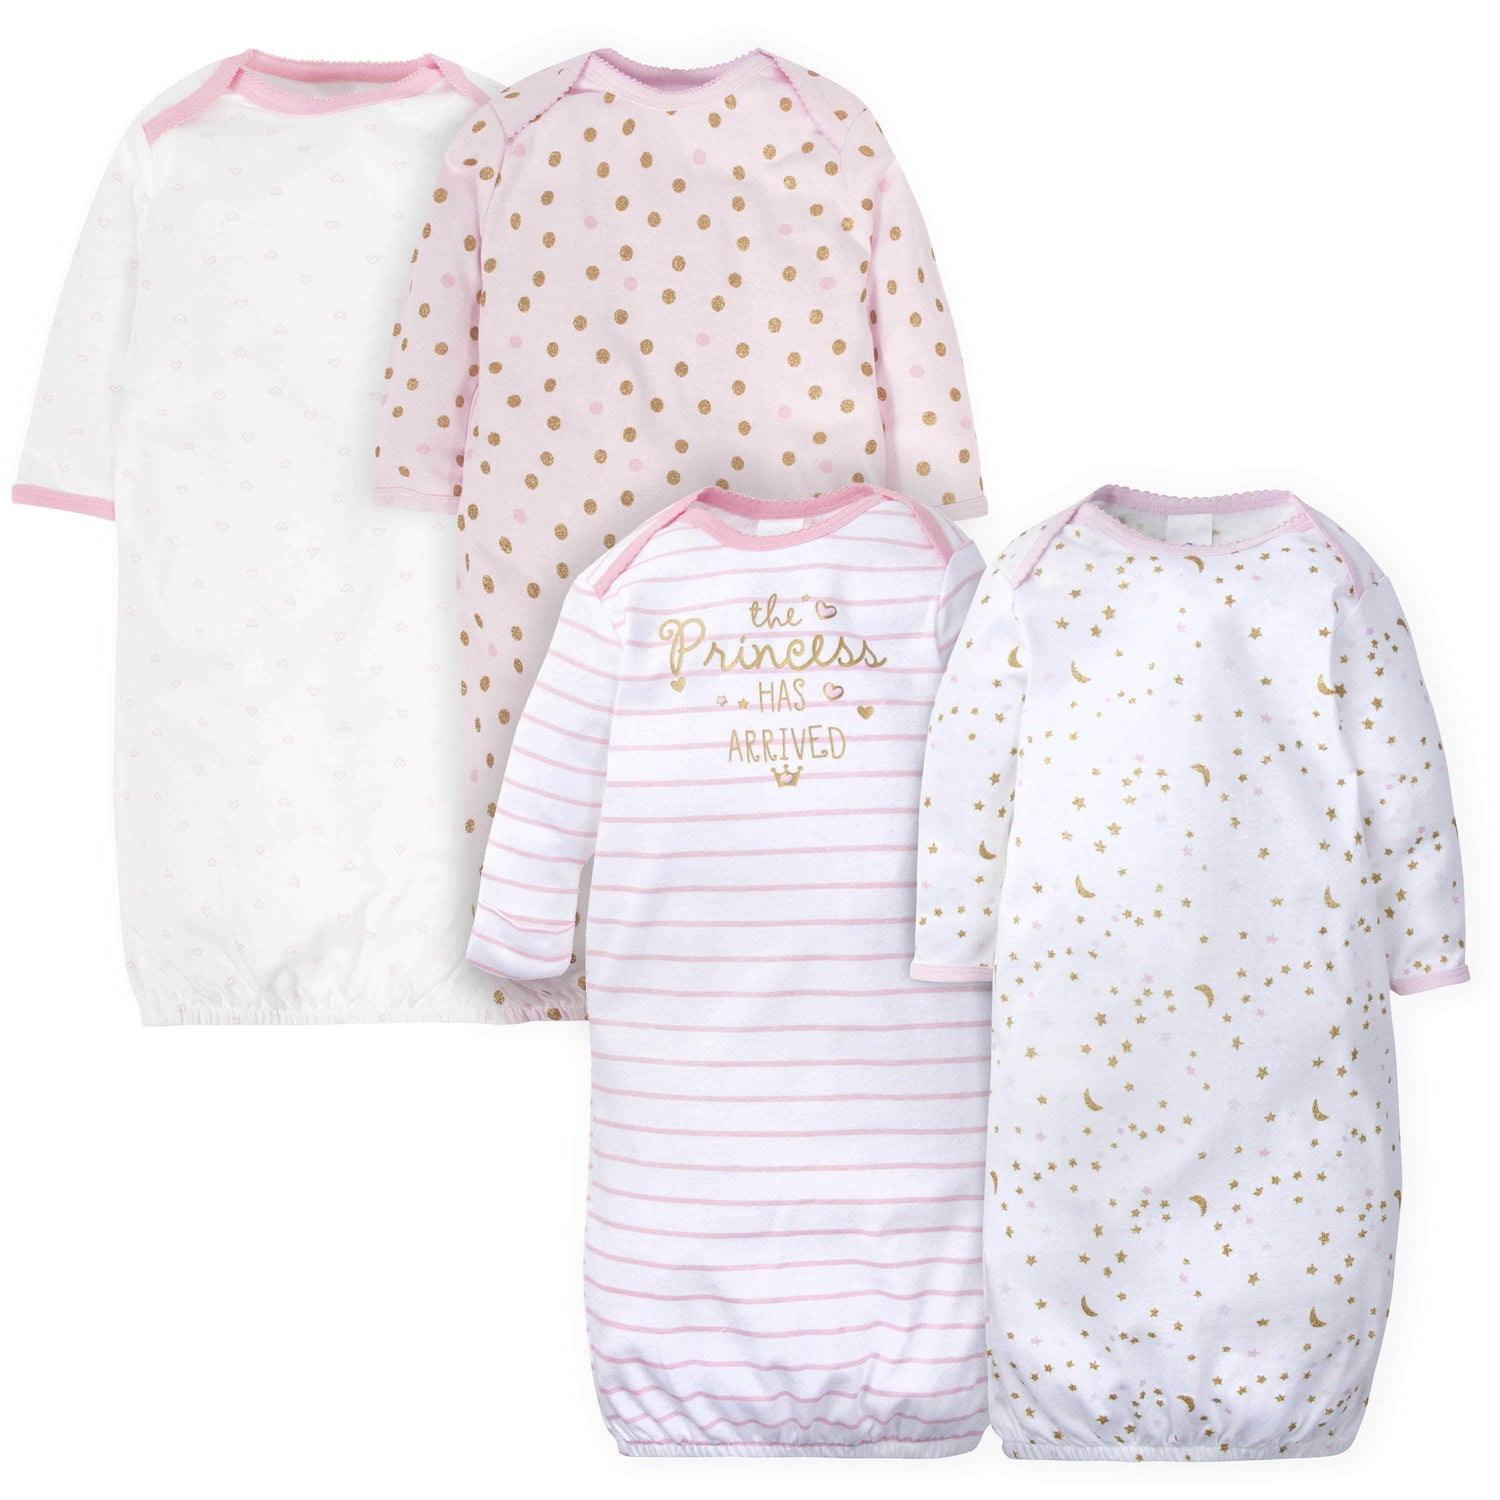 Gerber Baby 4-Pack Gowns